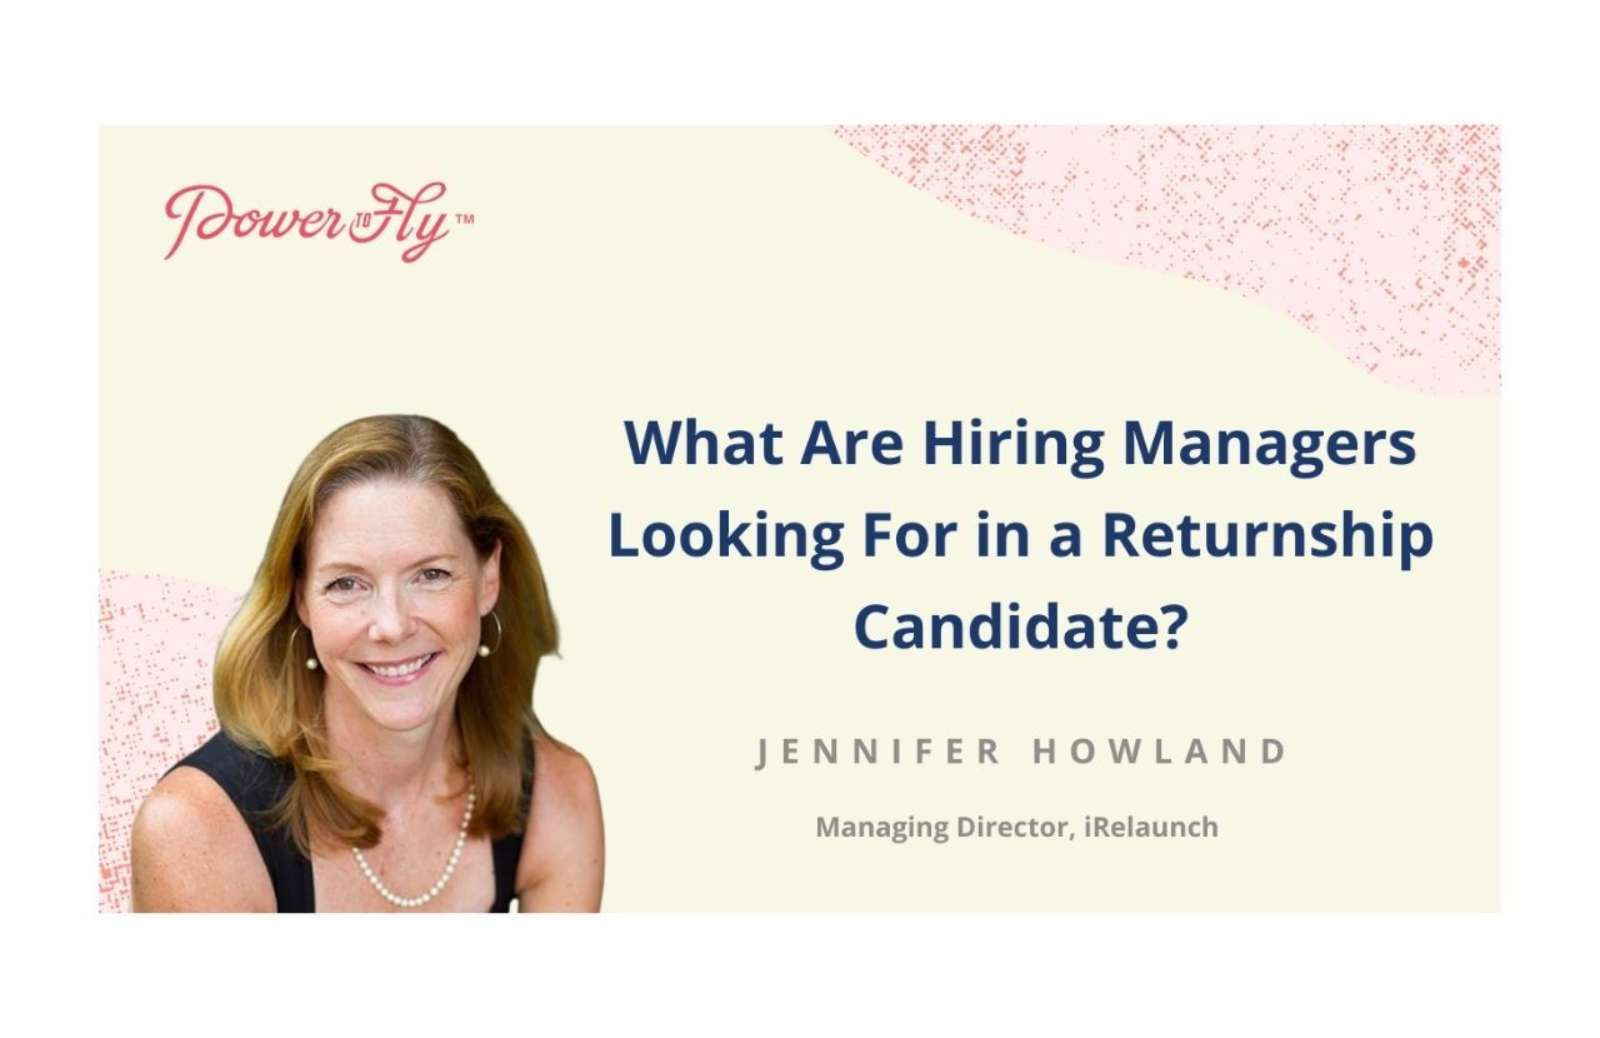 What Are Hiring Managers Looking For in a Returnship Candidate